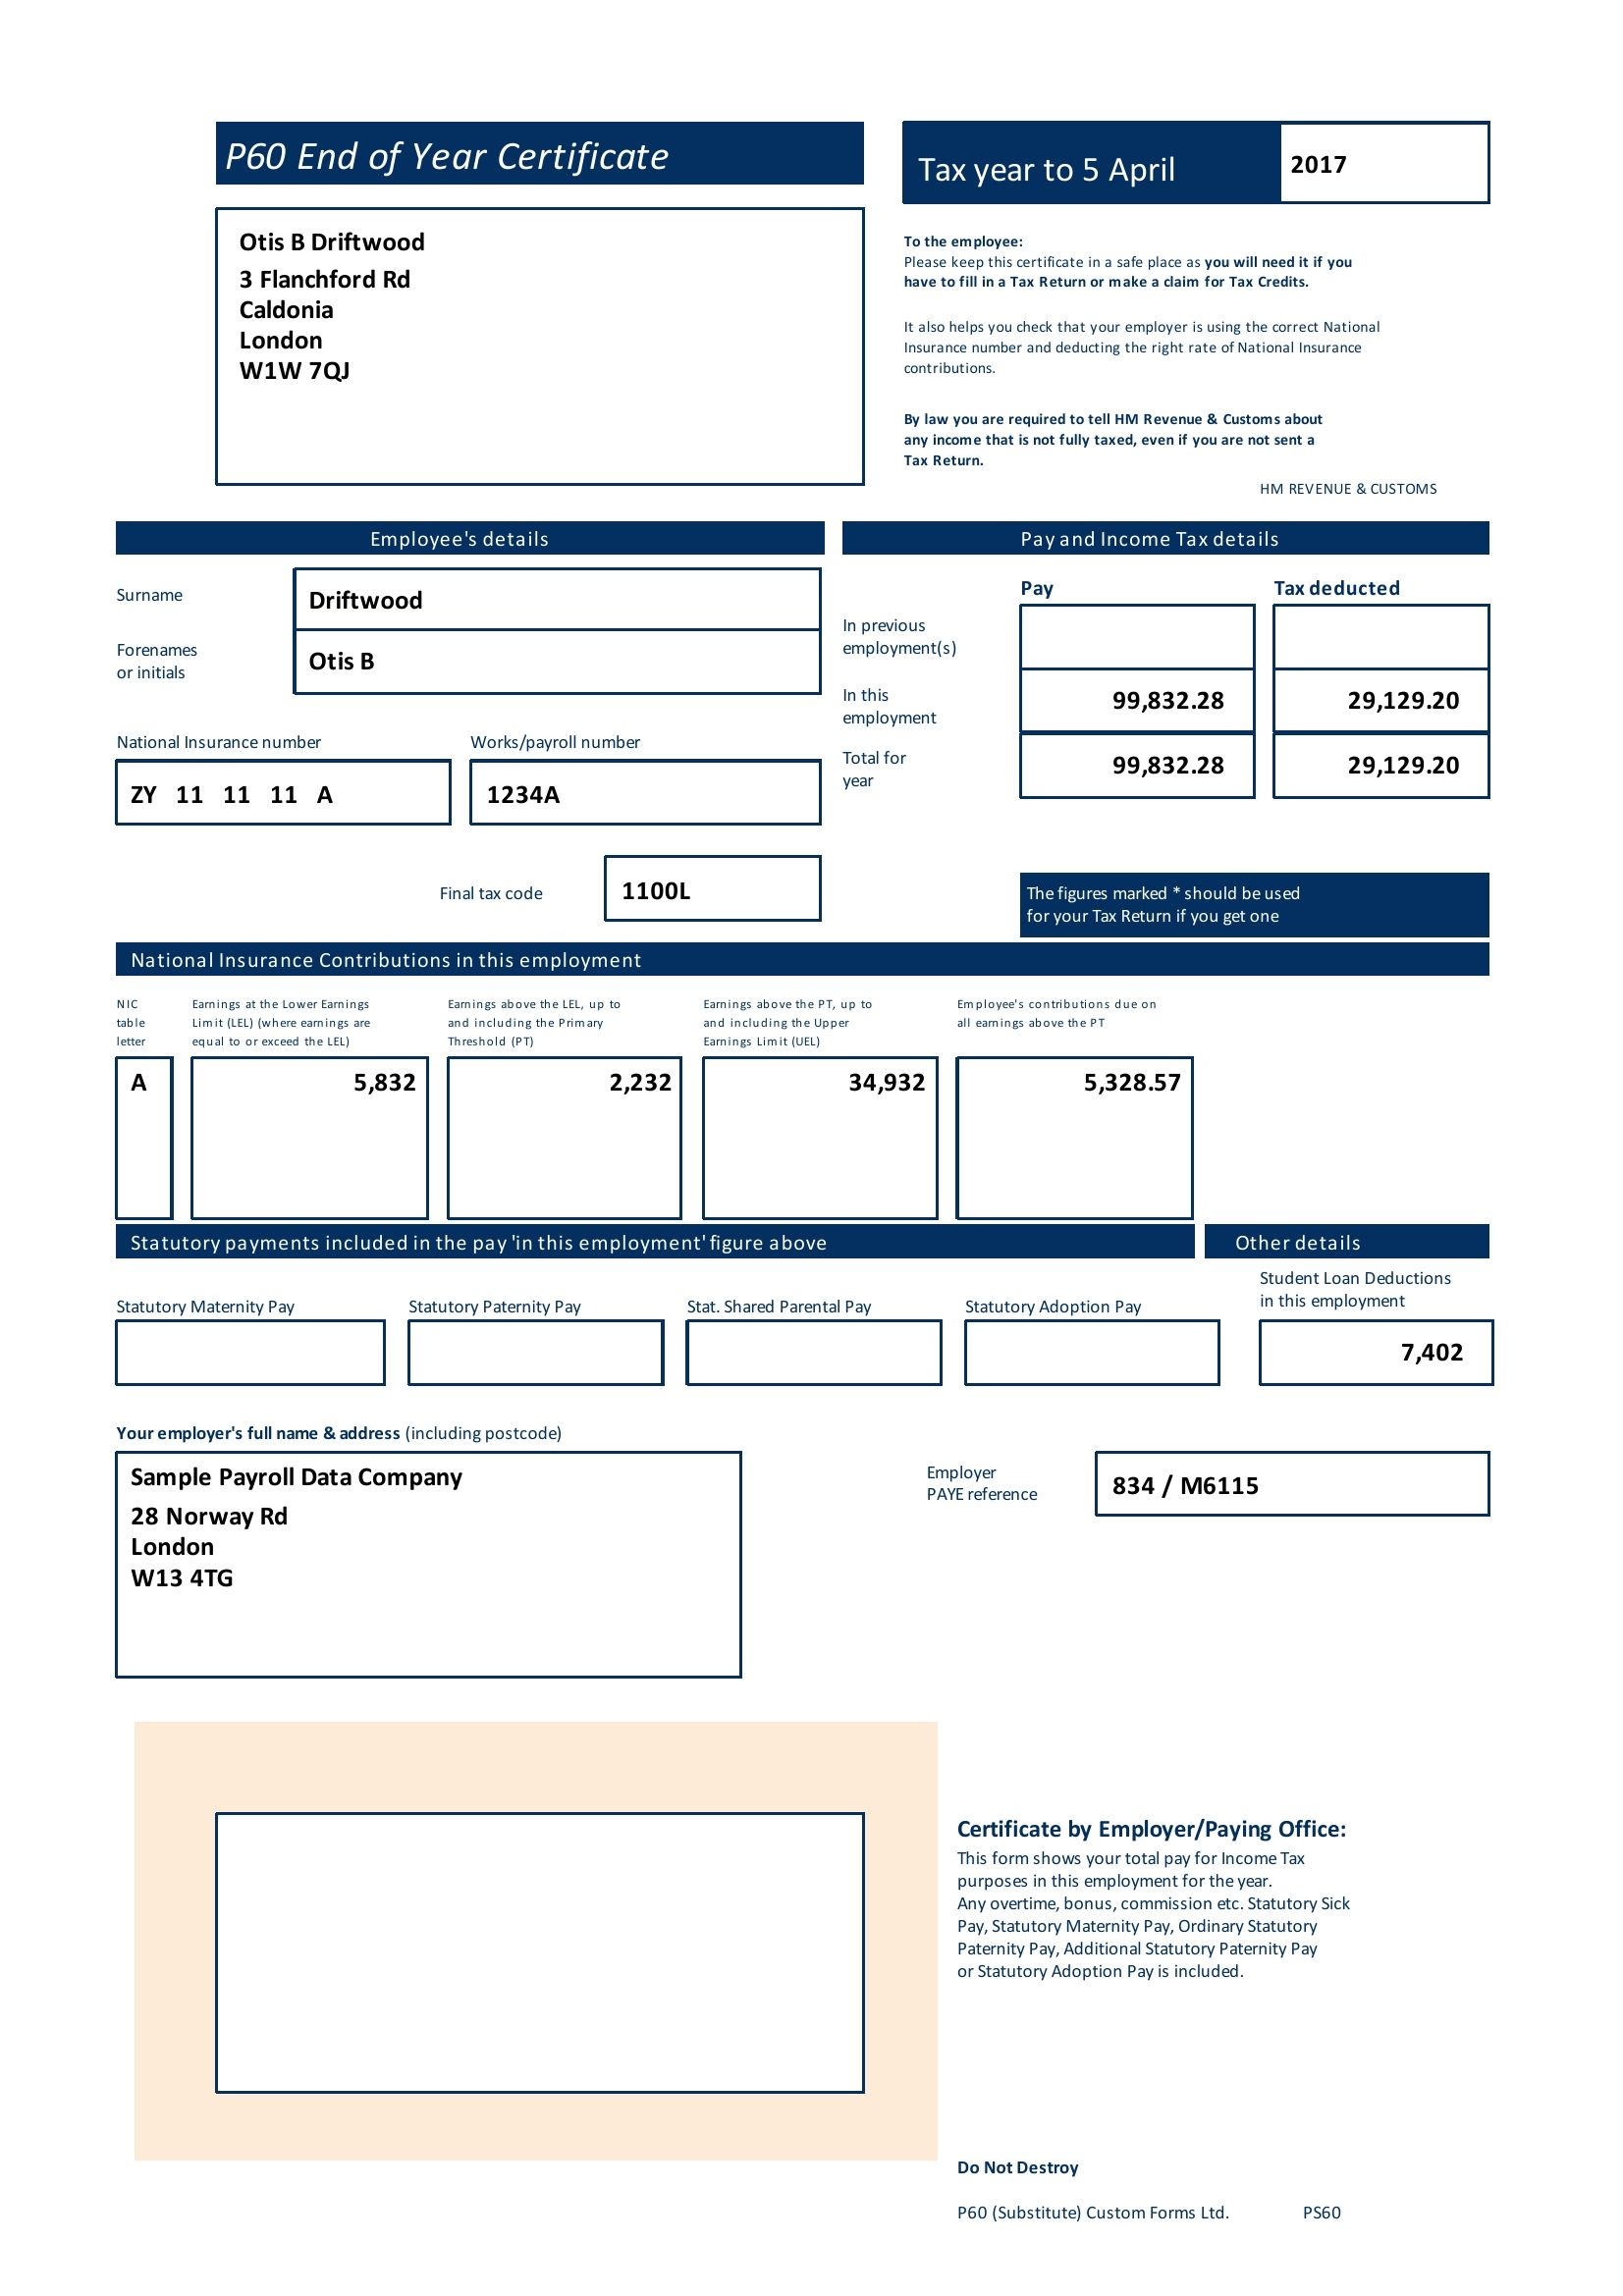 Buy Lost Or Damage Payslips Online At Lowest Price In Uk With